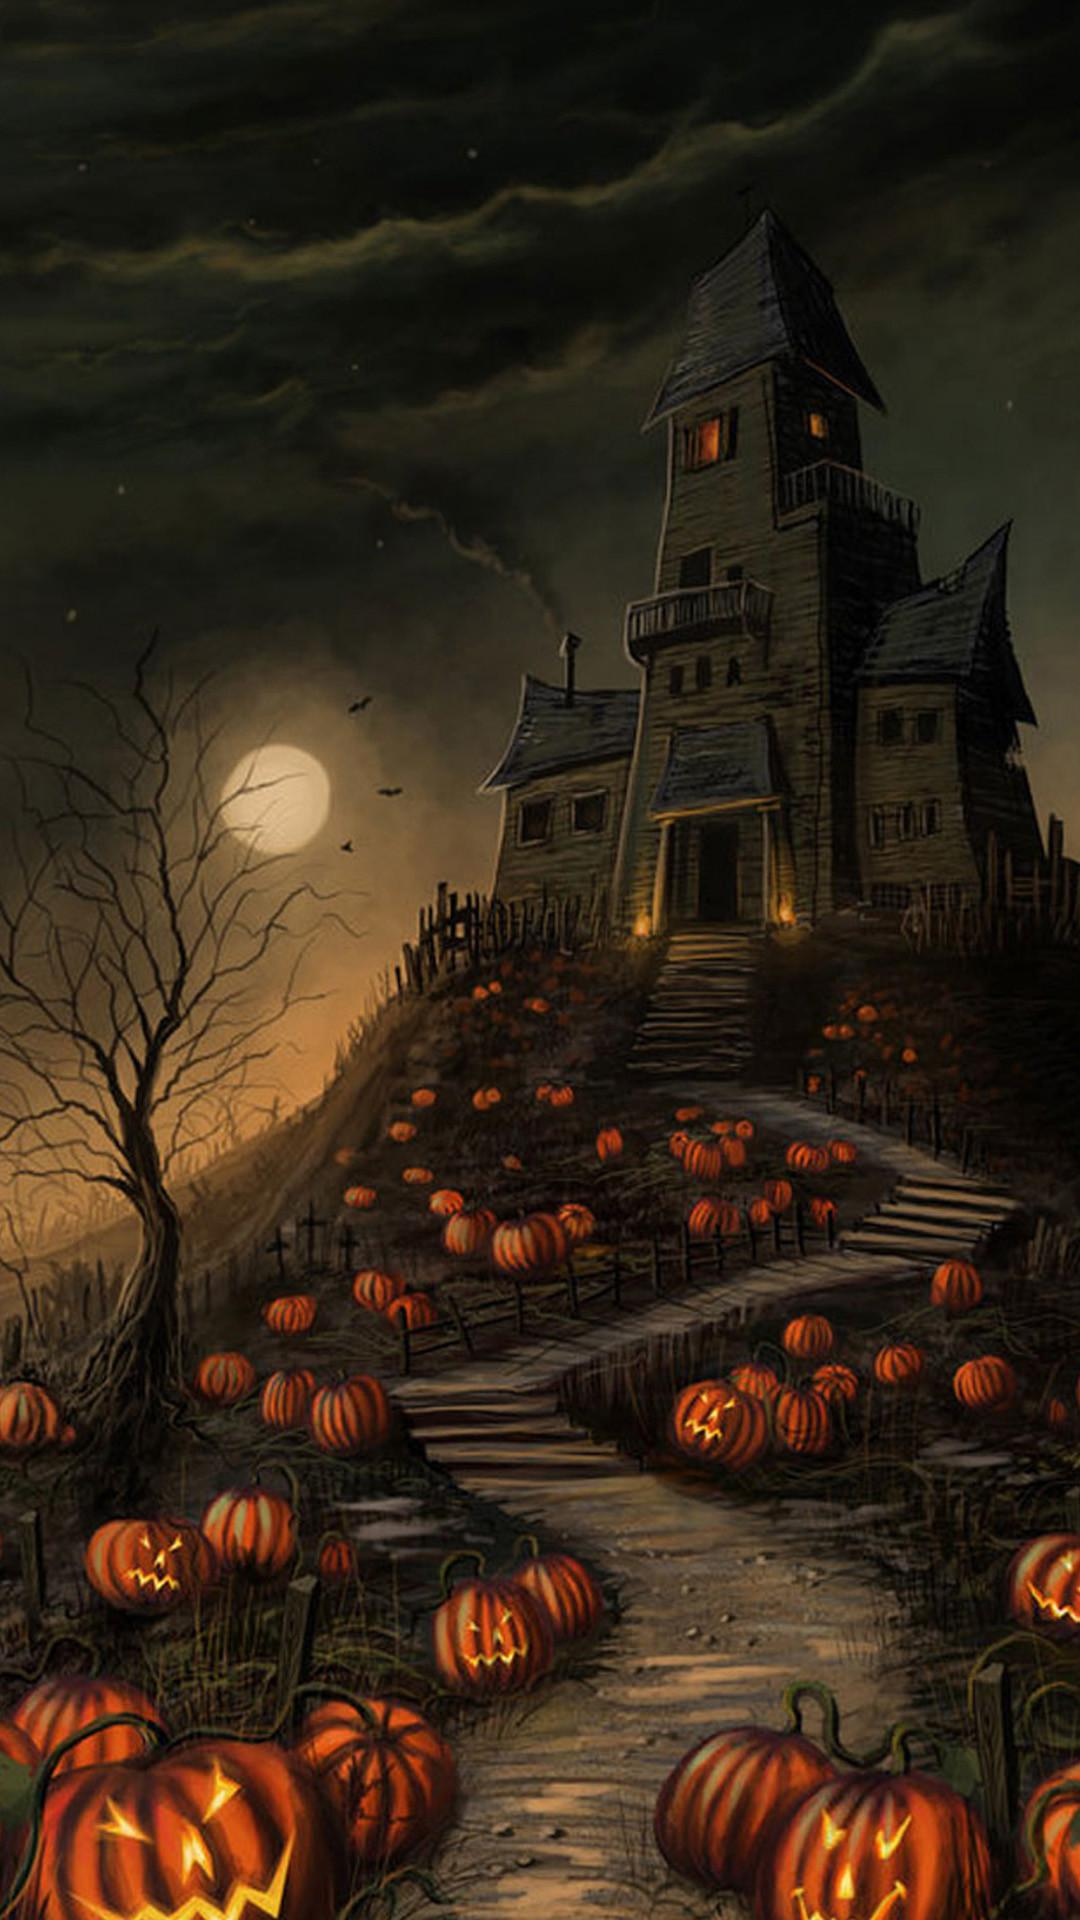 Pin by Christina Kovalik on FallHalloween in